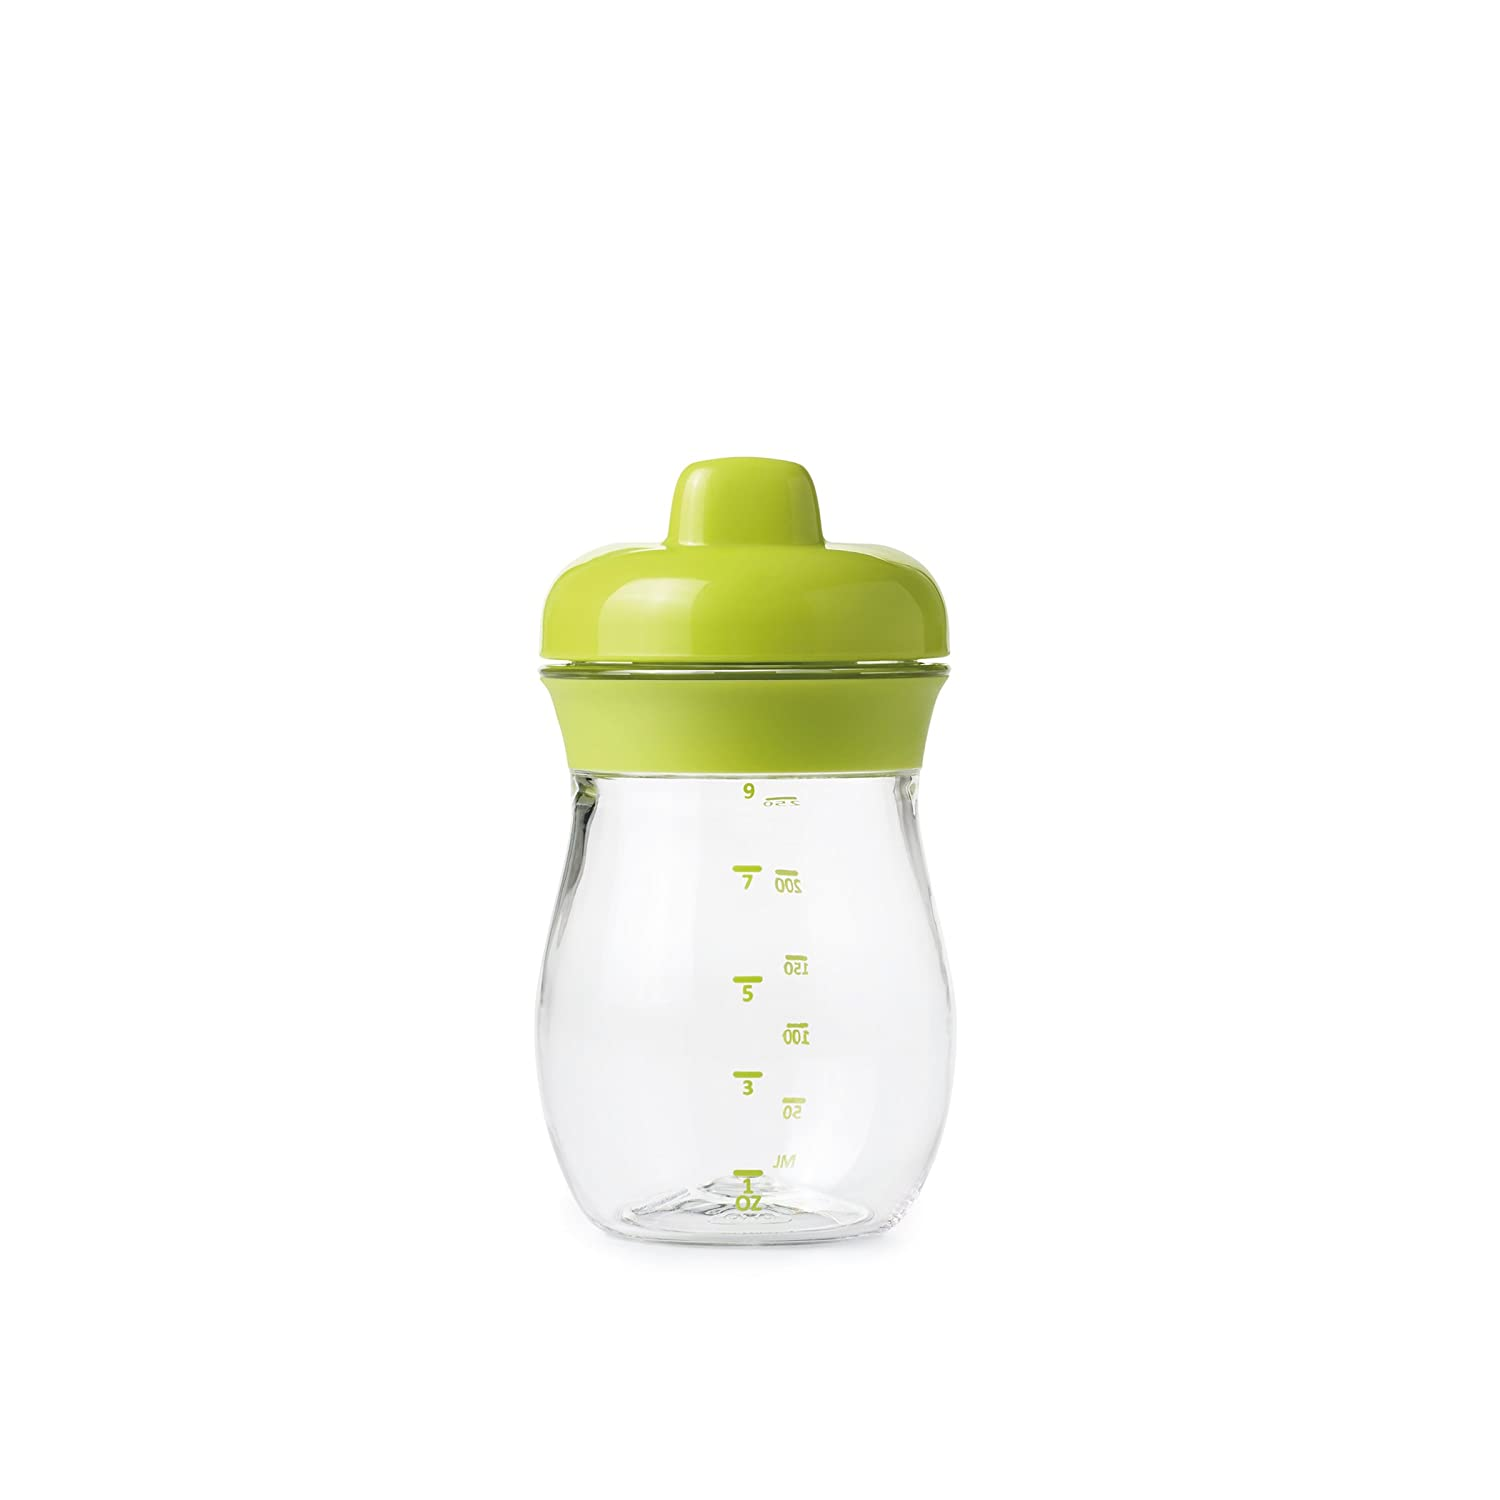 Oxo Tot Transitions Sippy Cup, Green, 9 Ounce by Oxo